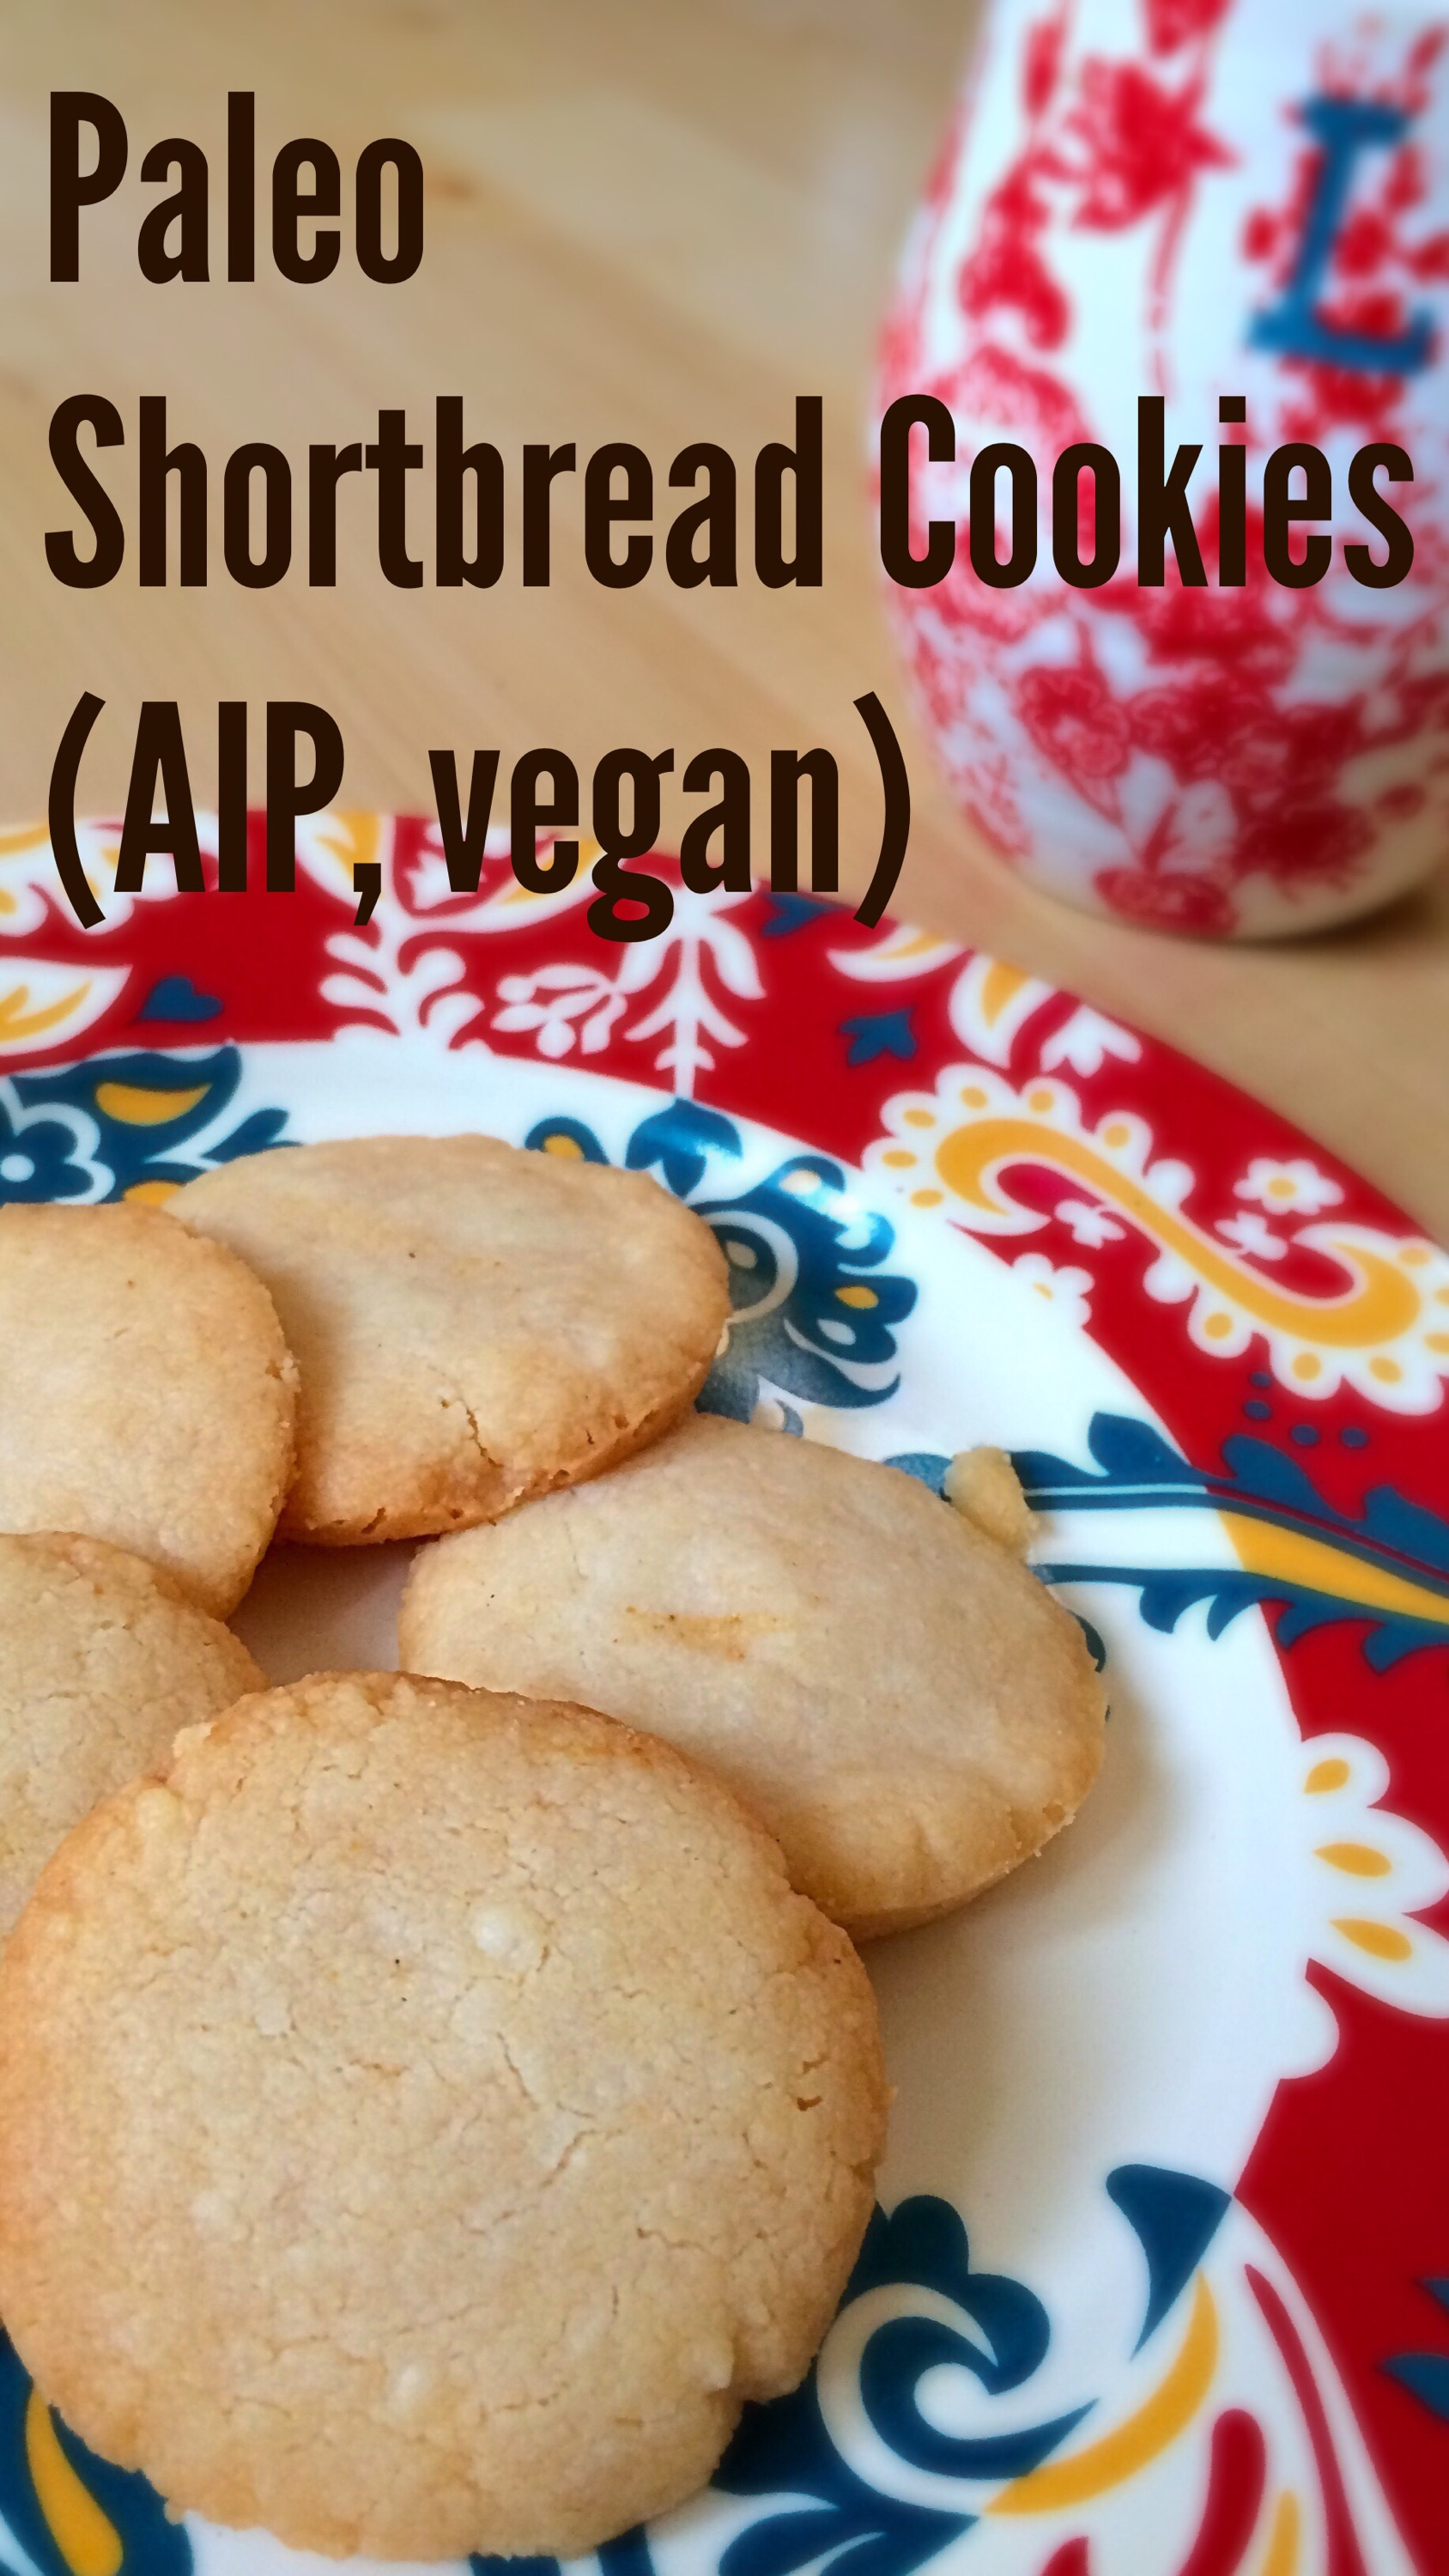 AIP paleo shortbread cookies - vegan, grain free, delicious and super simple!